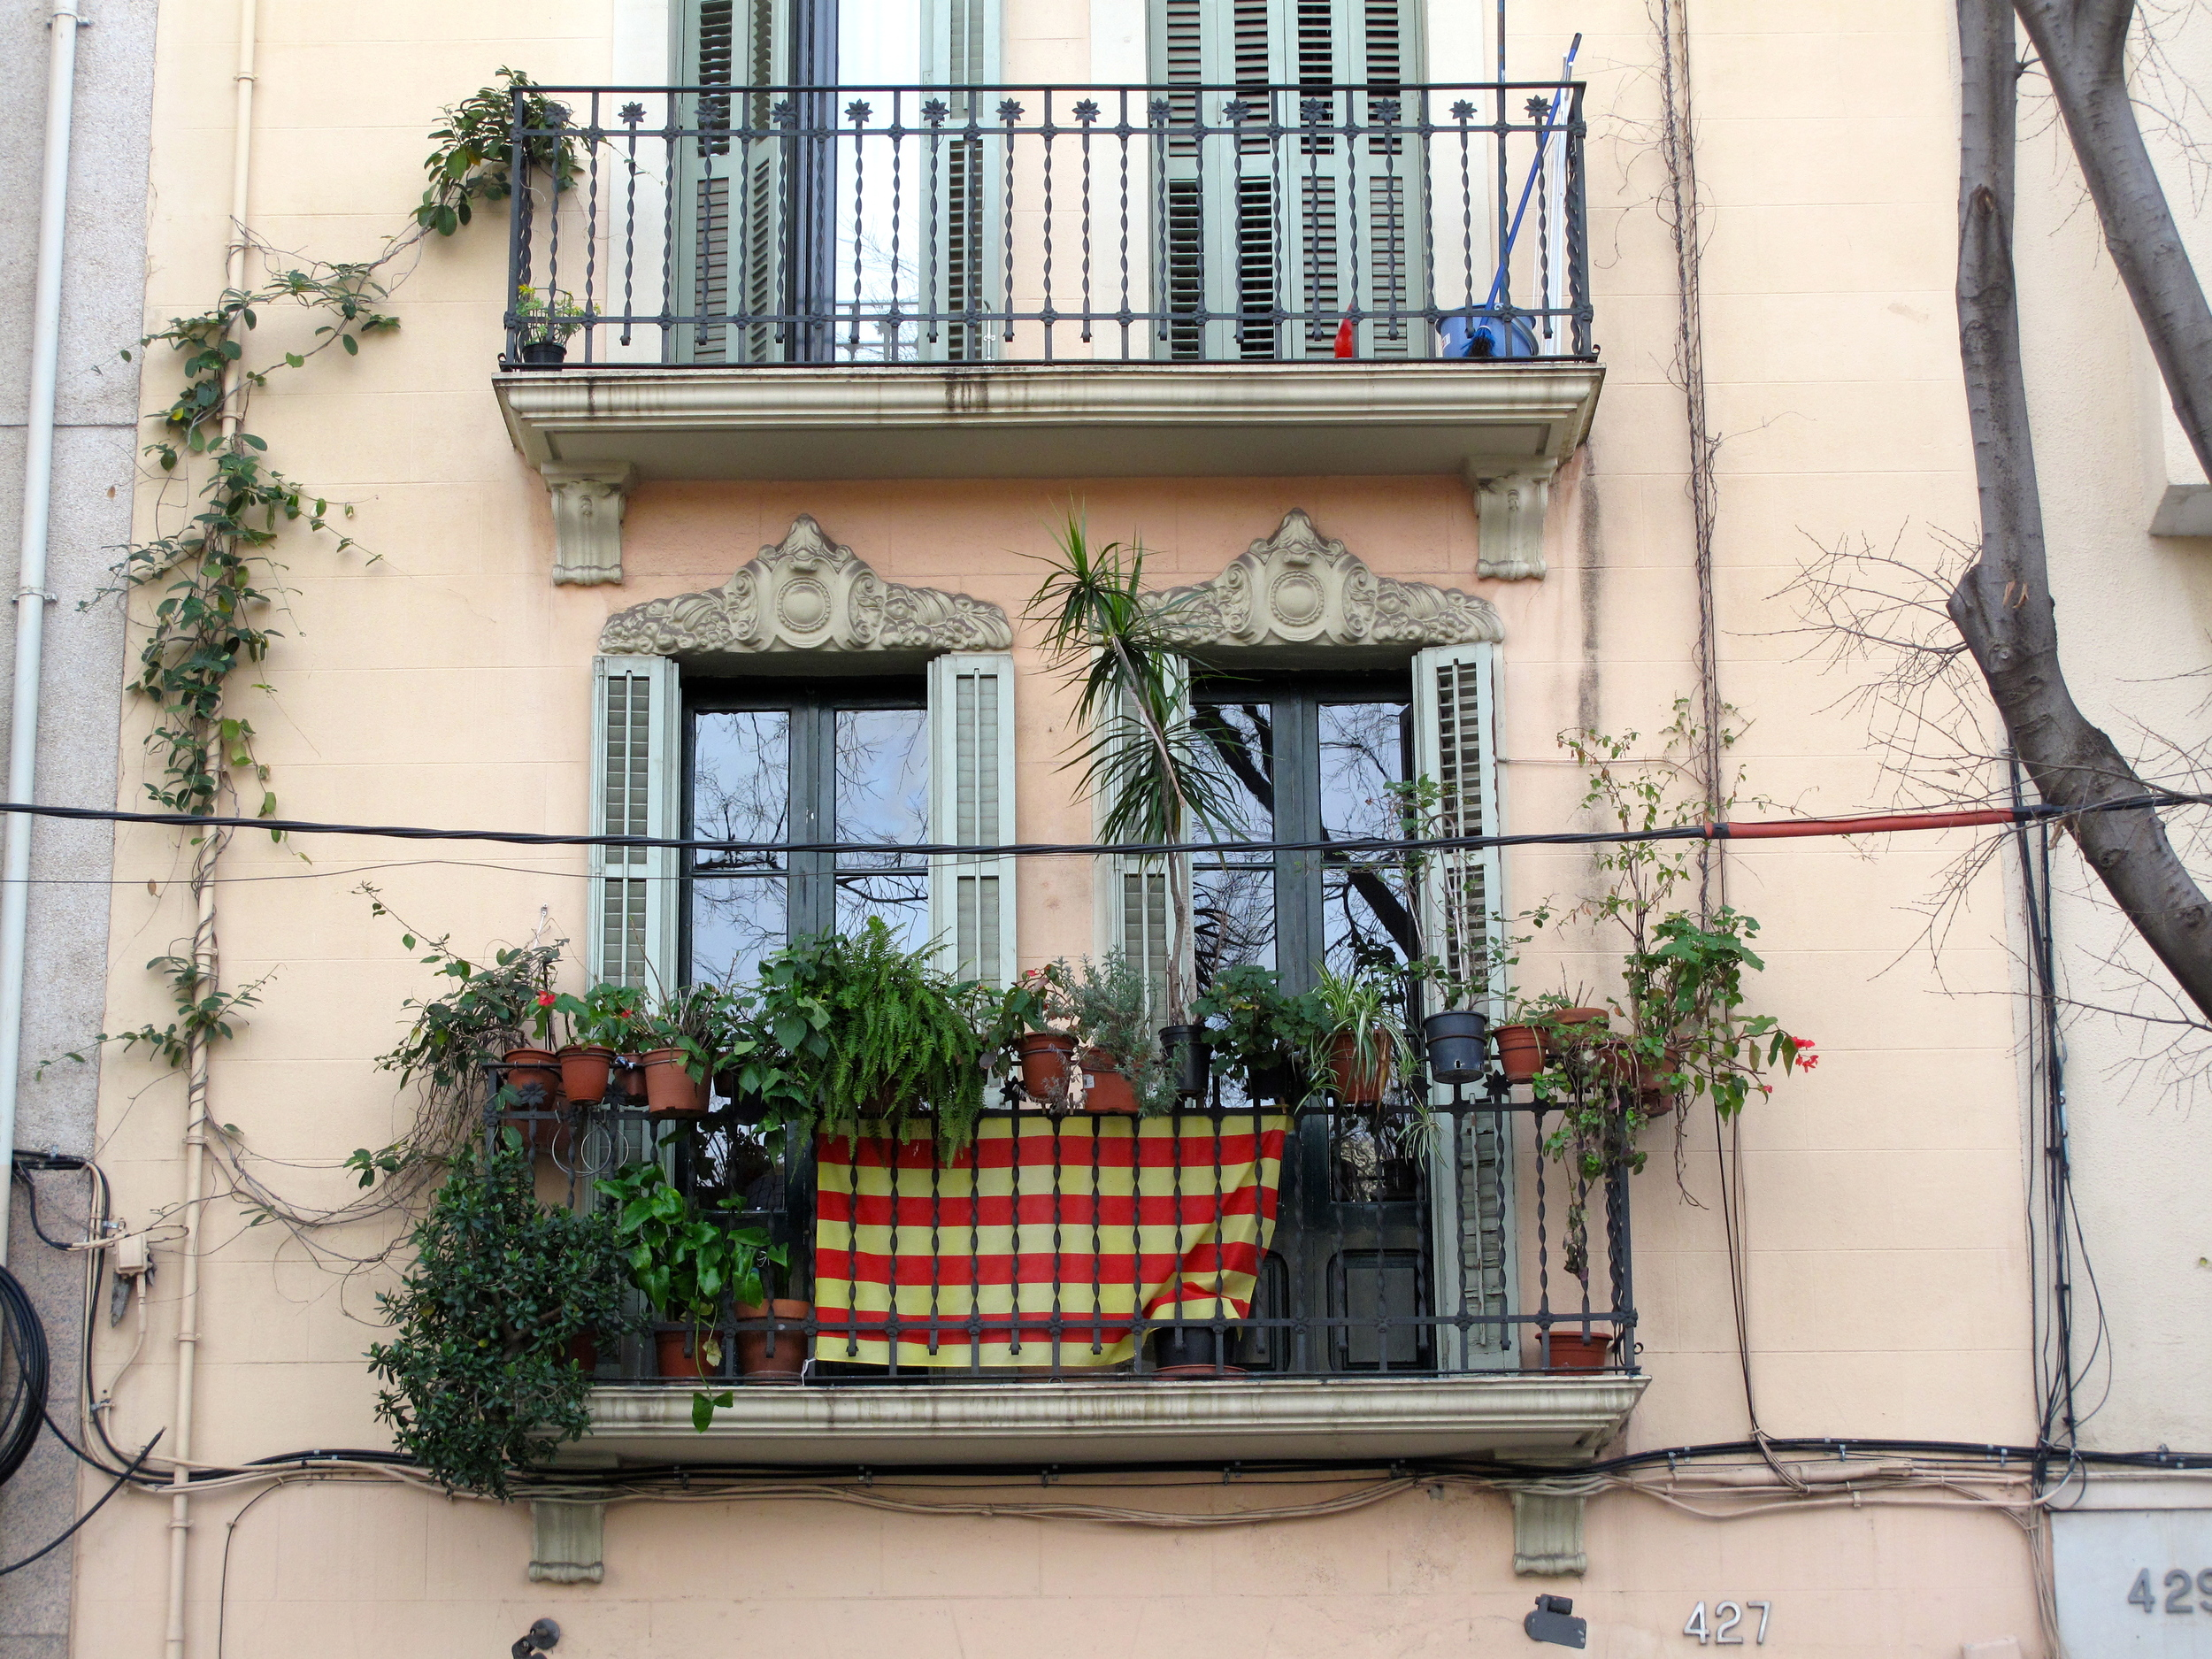 A balcony in Barcelona, covered in plants and sporting the Catalan football flag.